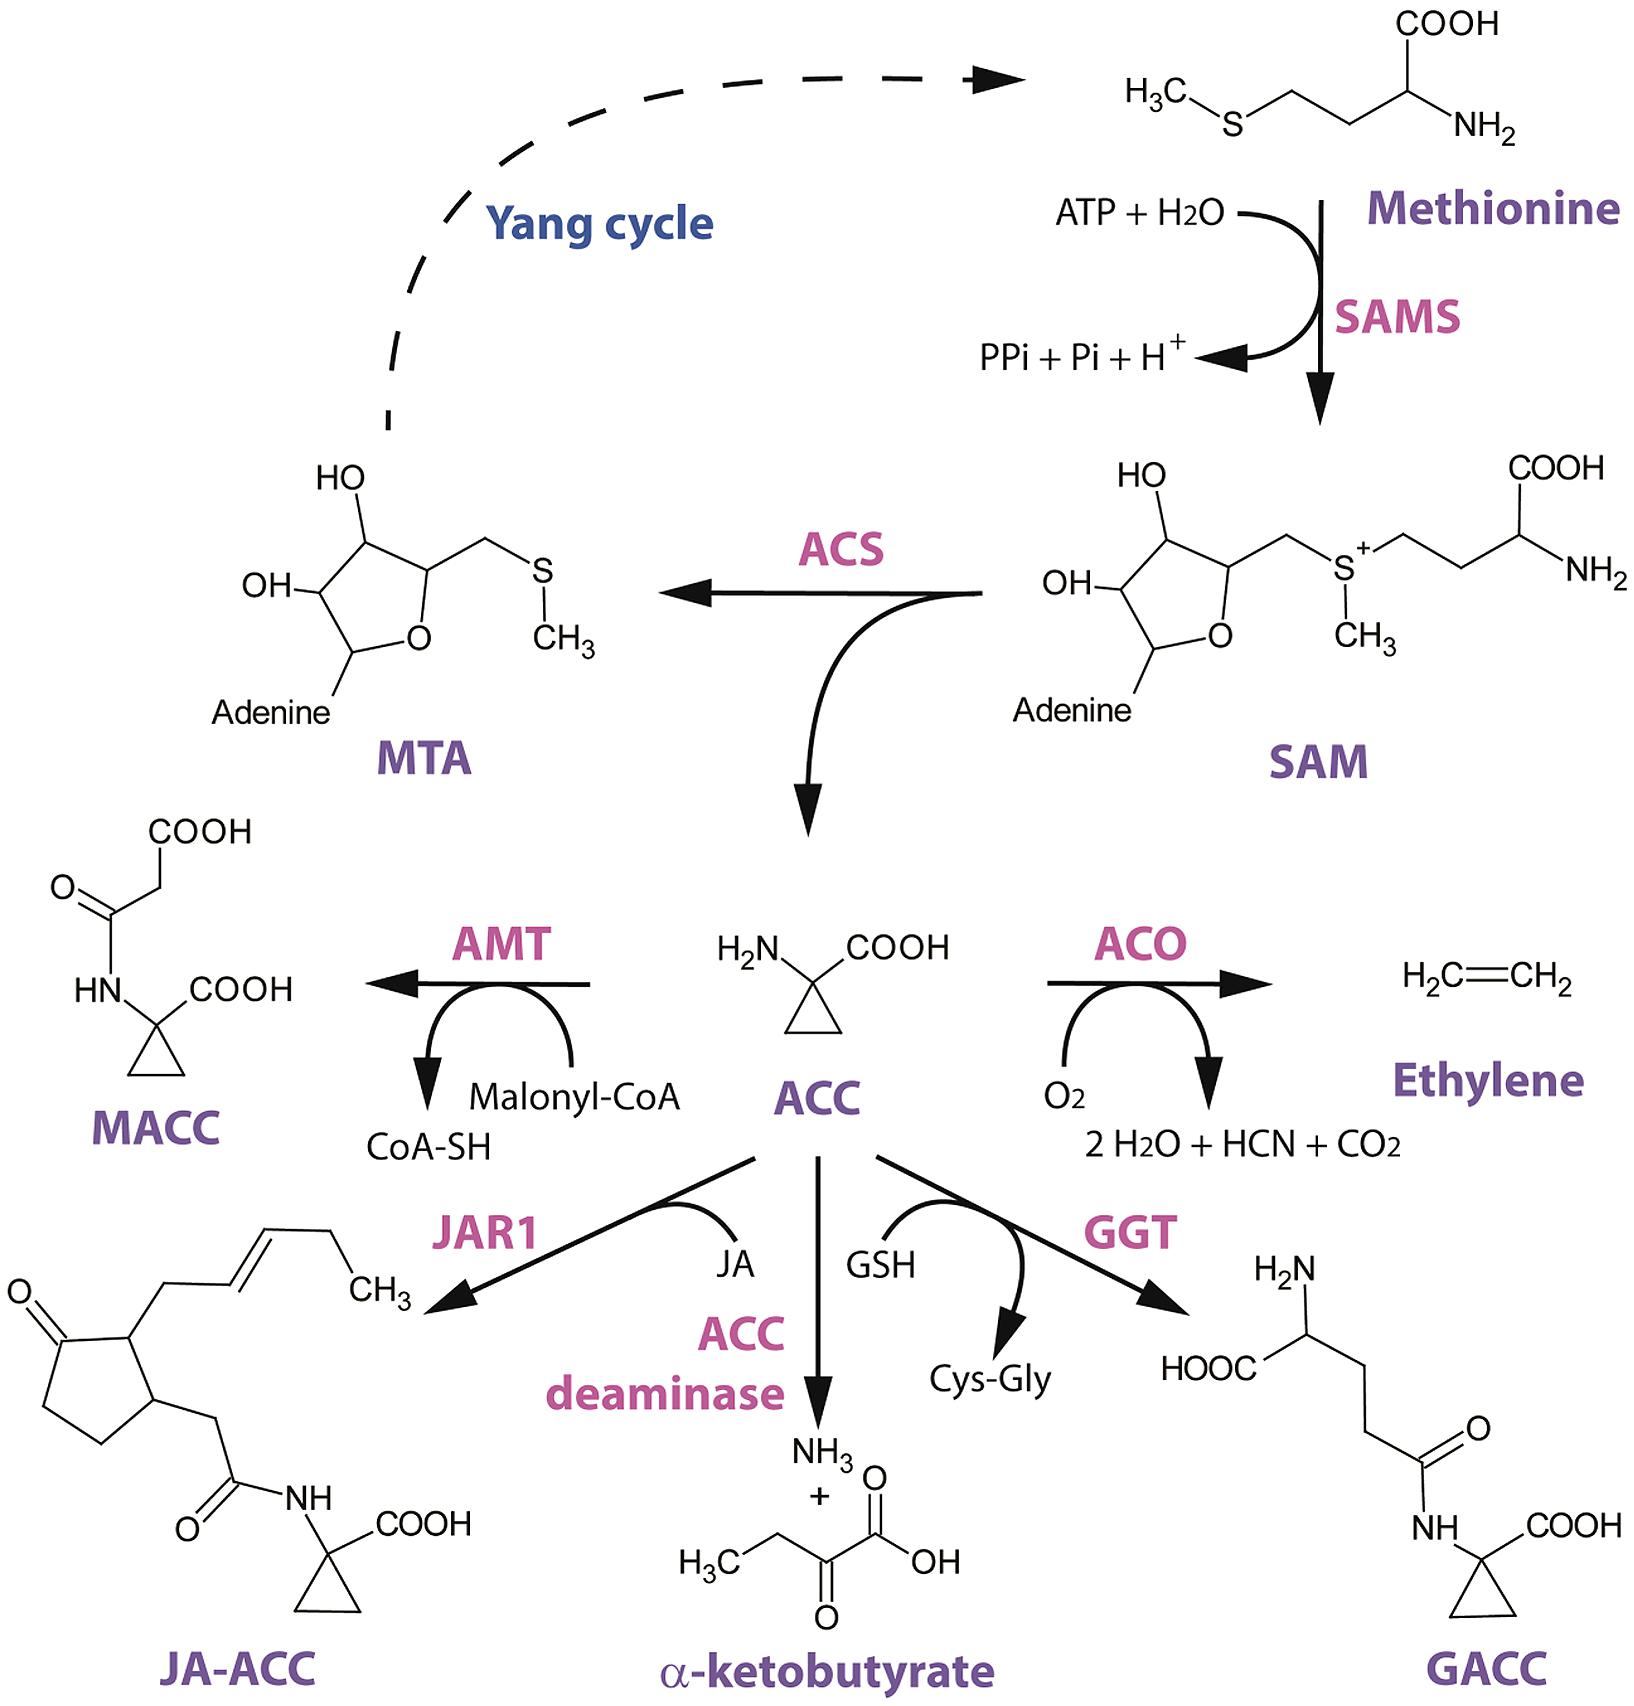 mechanism of hormone action between steroid and nonsteroid hormones